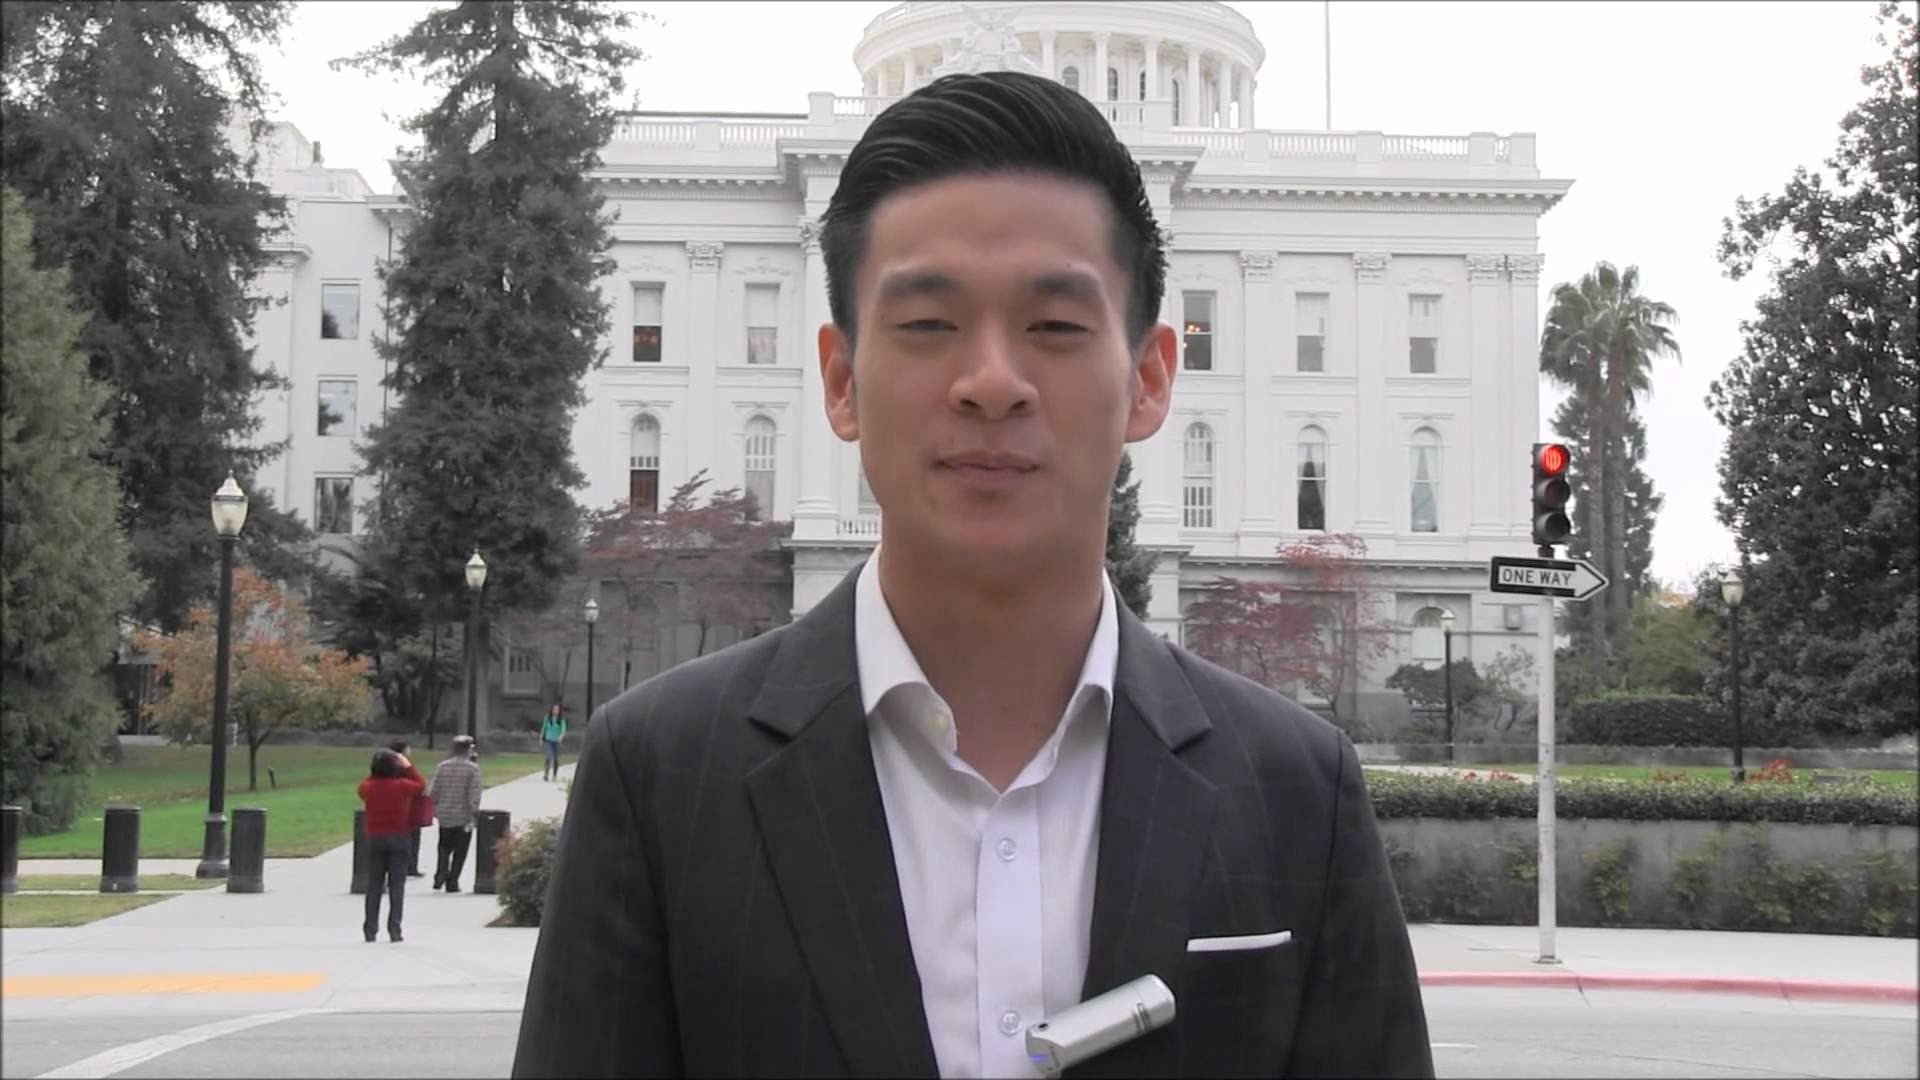 California squelches free speech and politicizes mental health